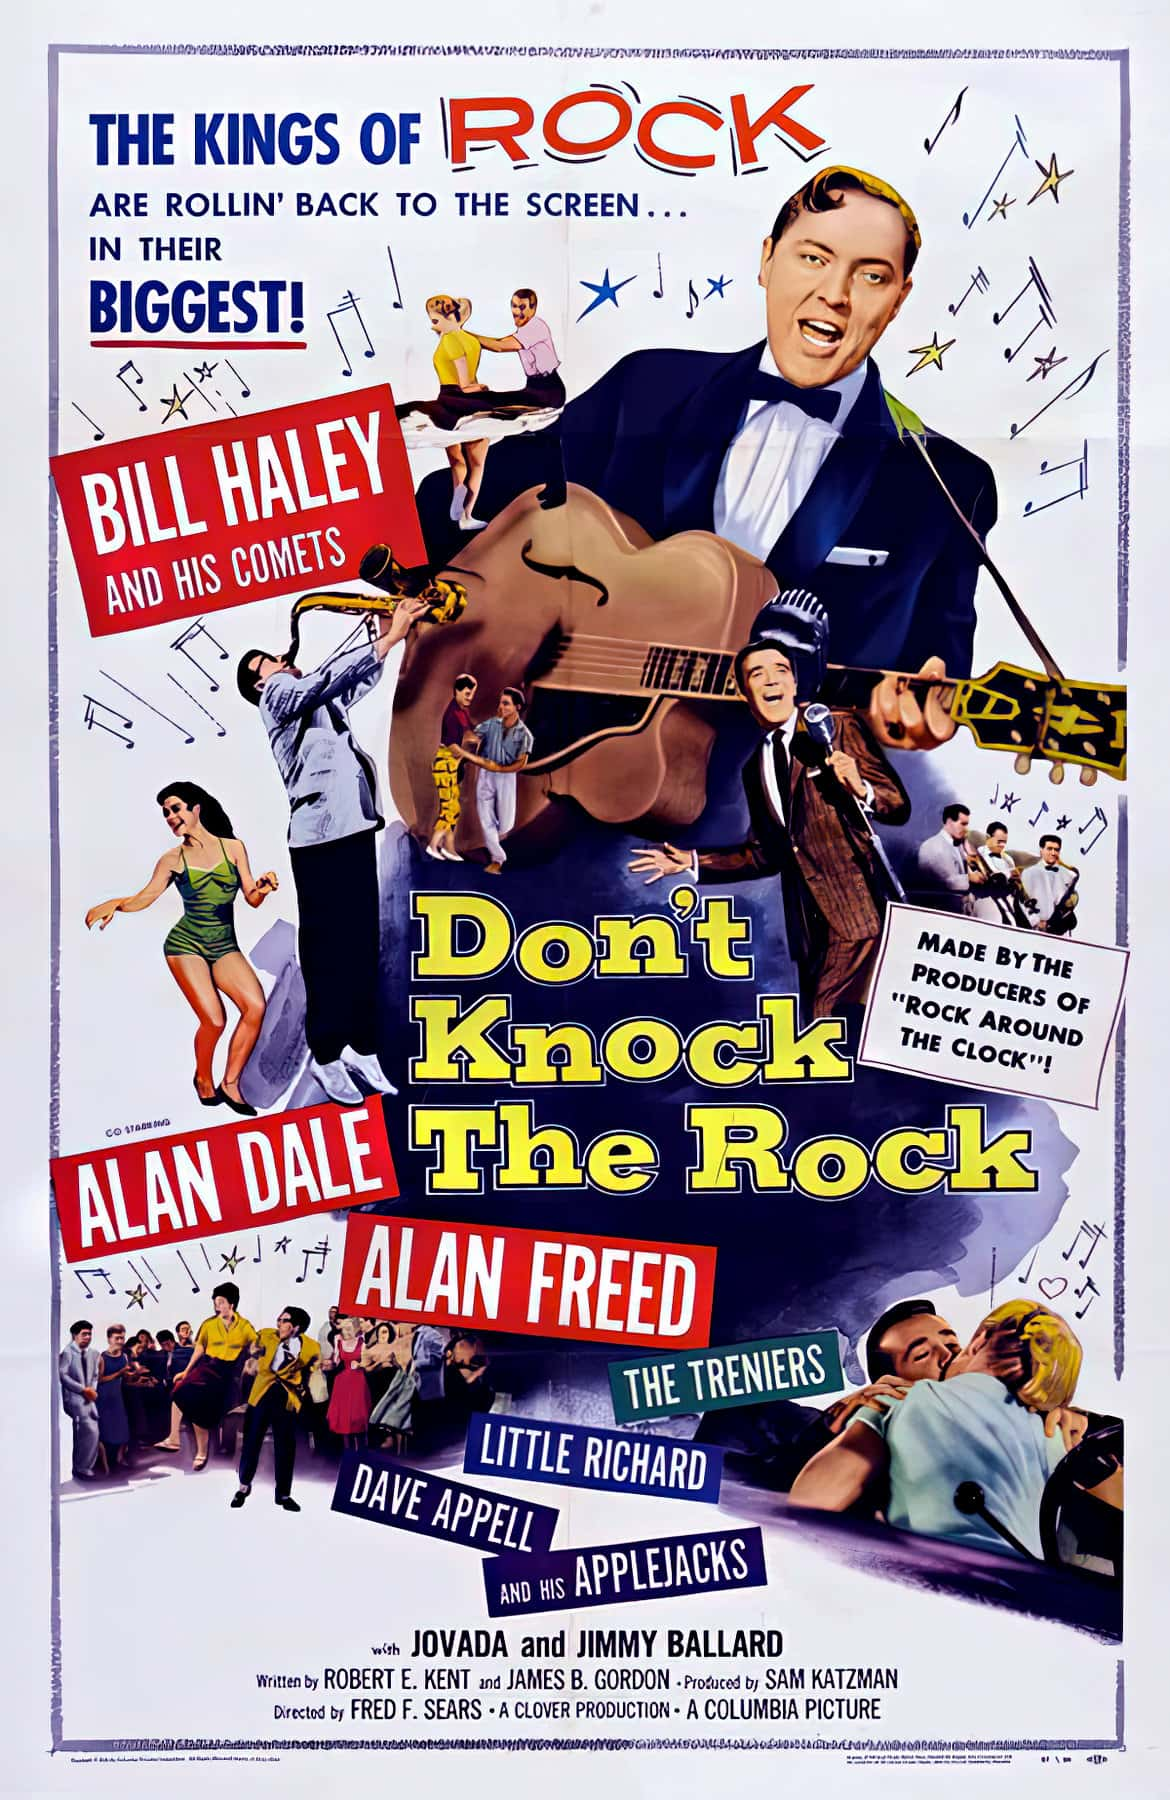 Don't Knock the Rock (1956) starring Bill Haley and His Comets